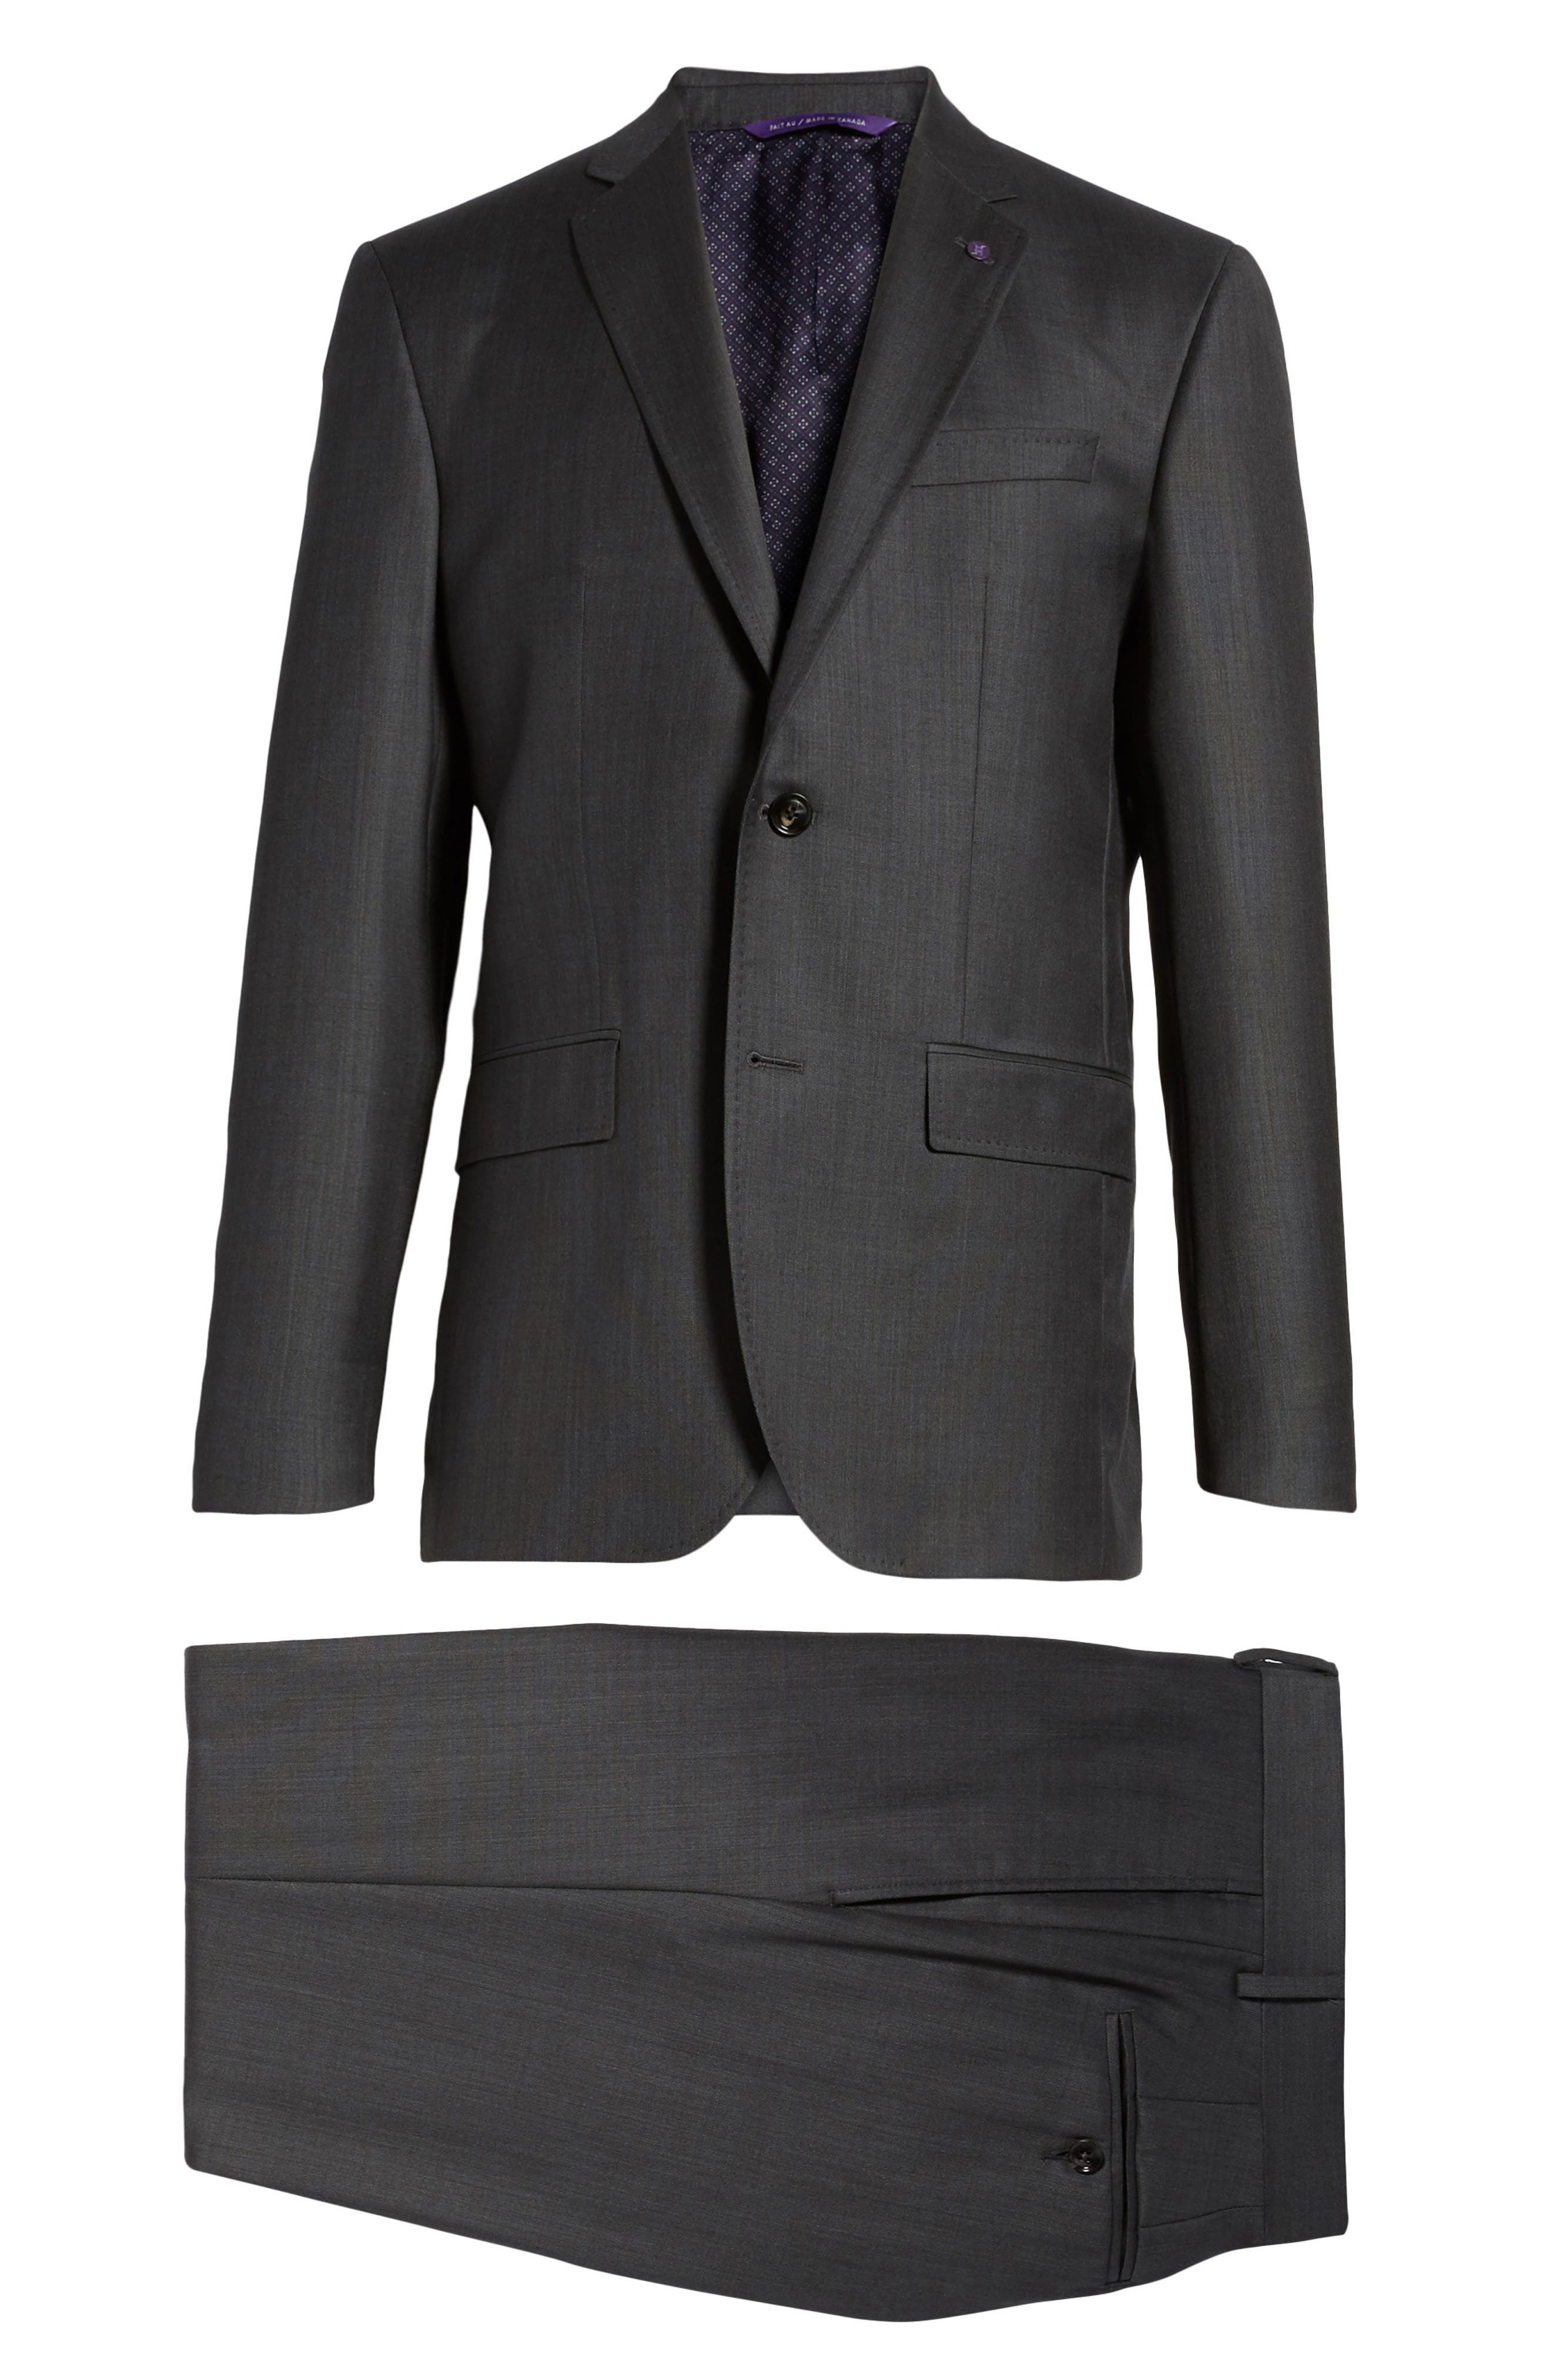 TED BAKER LONDON, ay' Trim Fit Solid Wool Suit, Alternate thumbnail 7, color, CHARCOAL